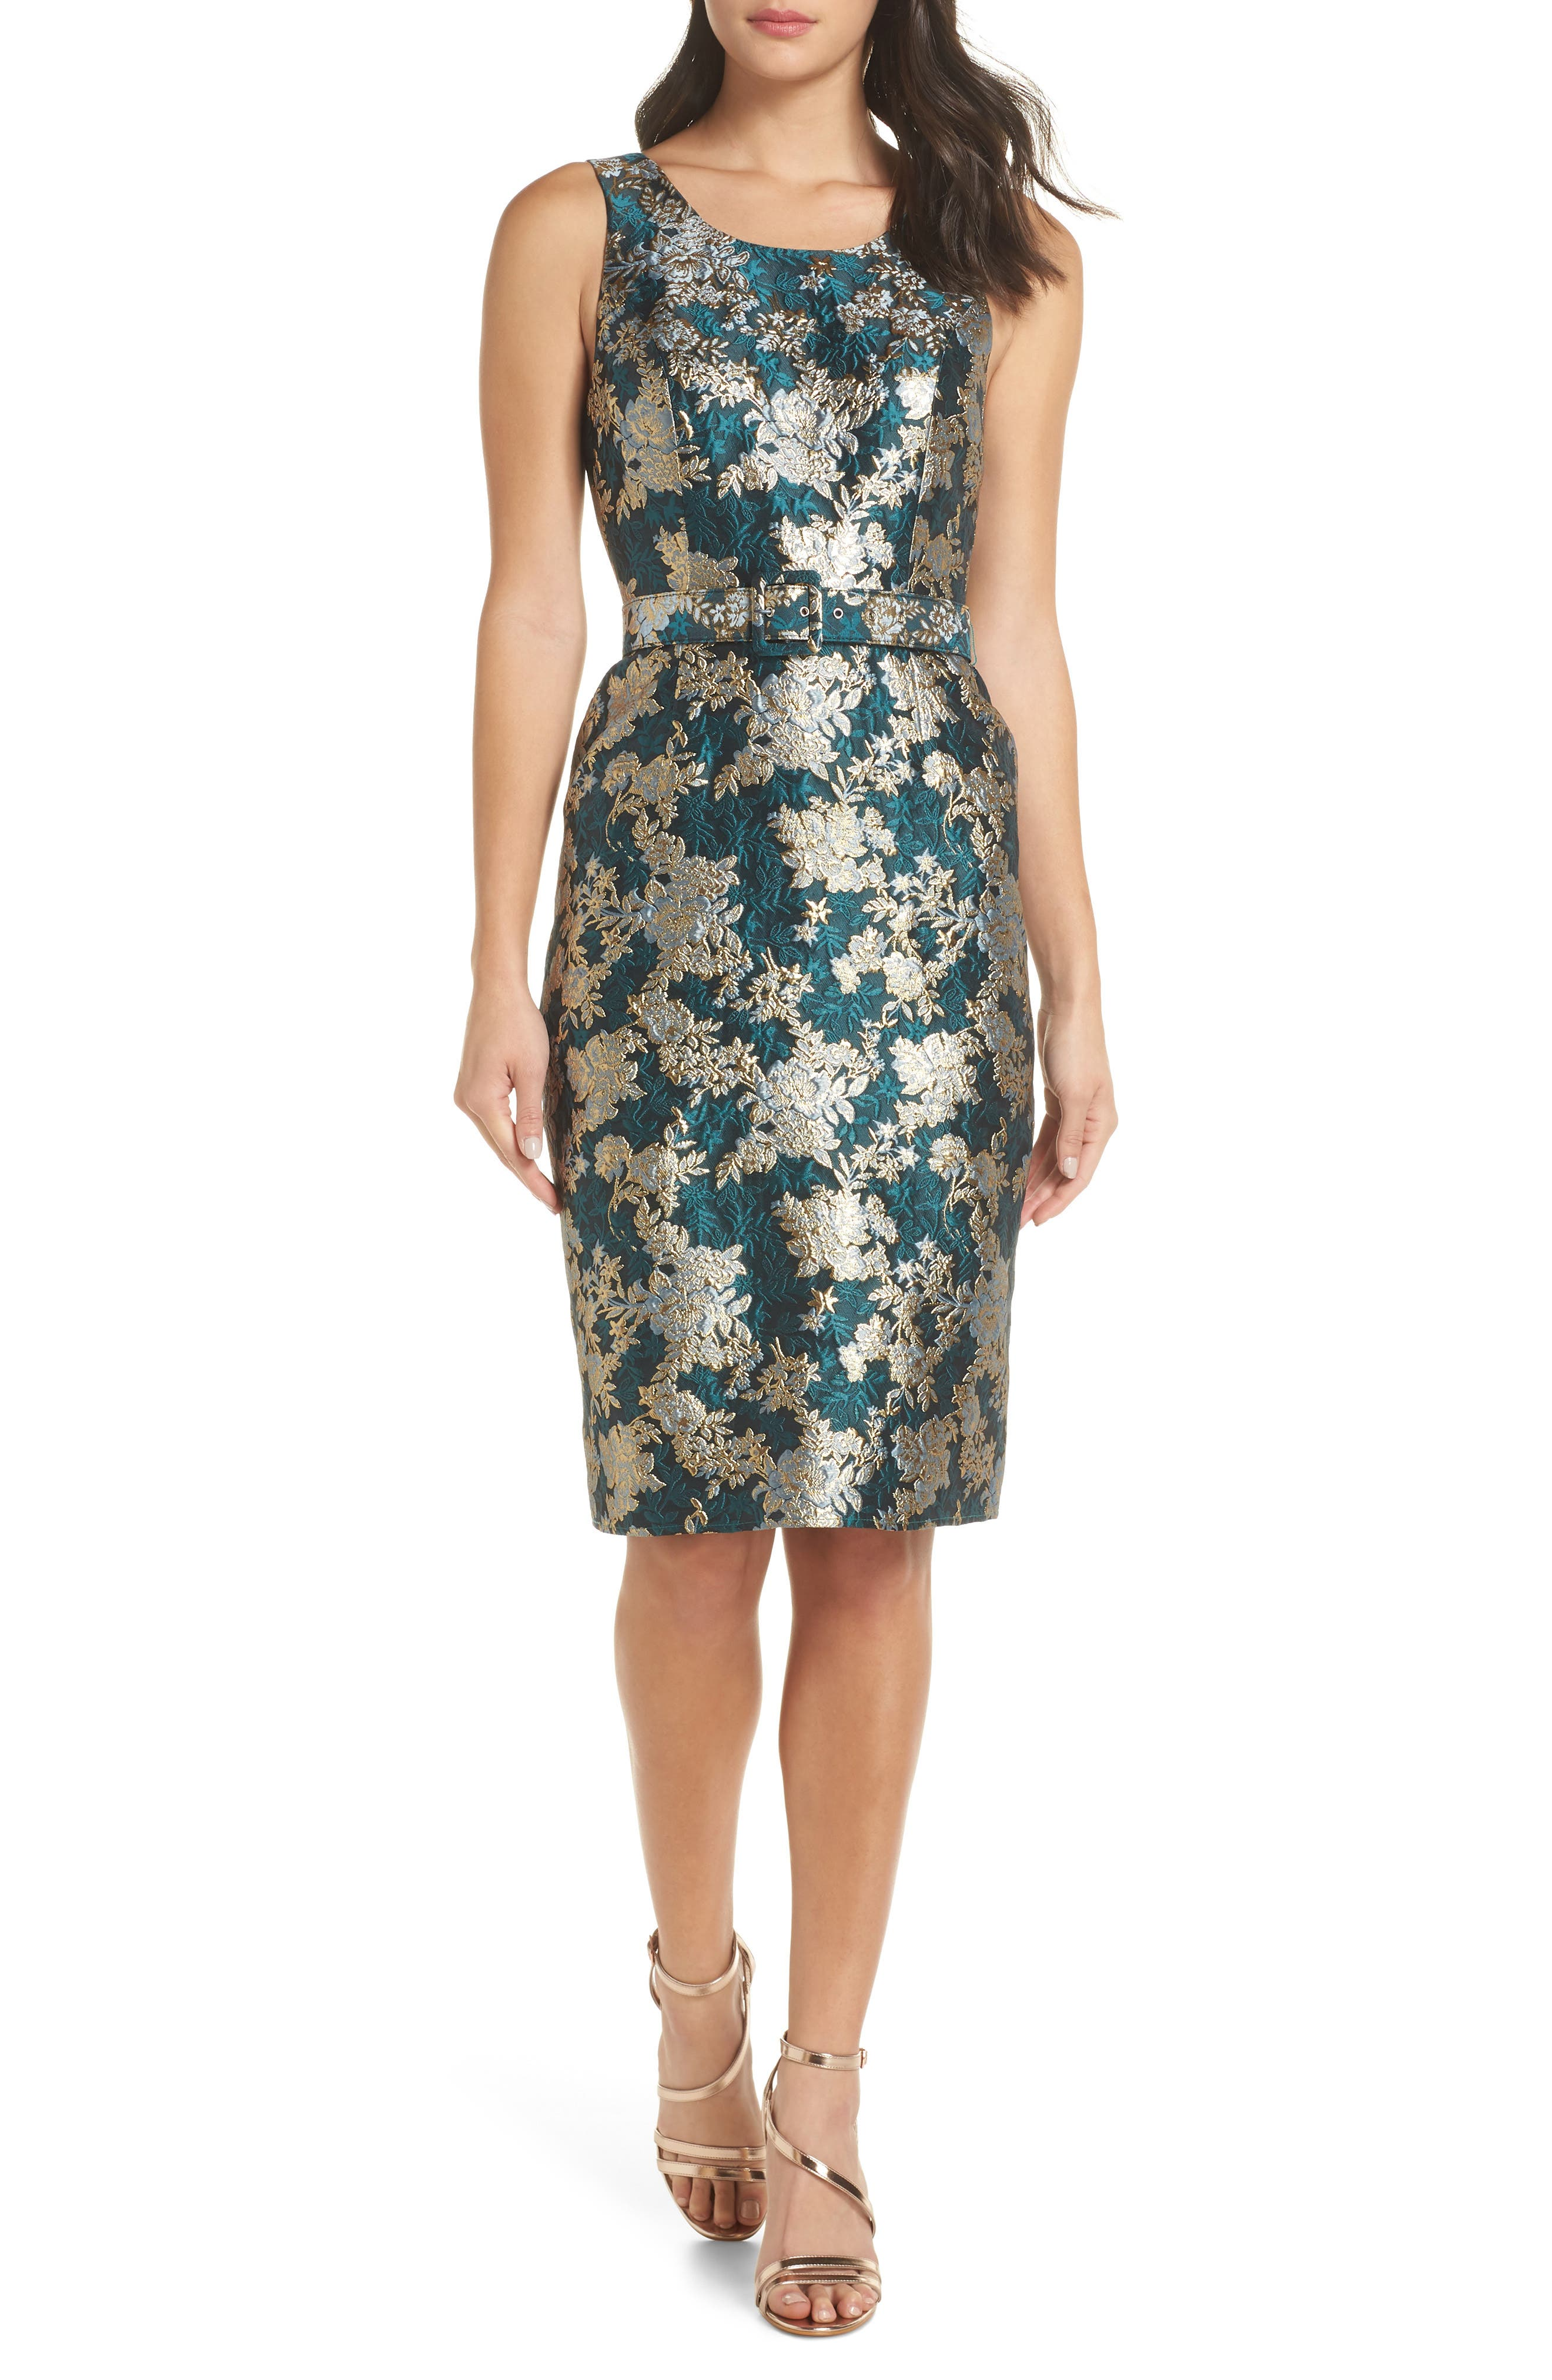 CHARLES HENRY Belted Jacquard A-Line Dress in Teal Jacquard